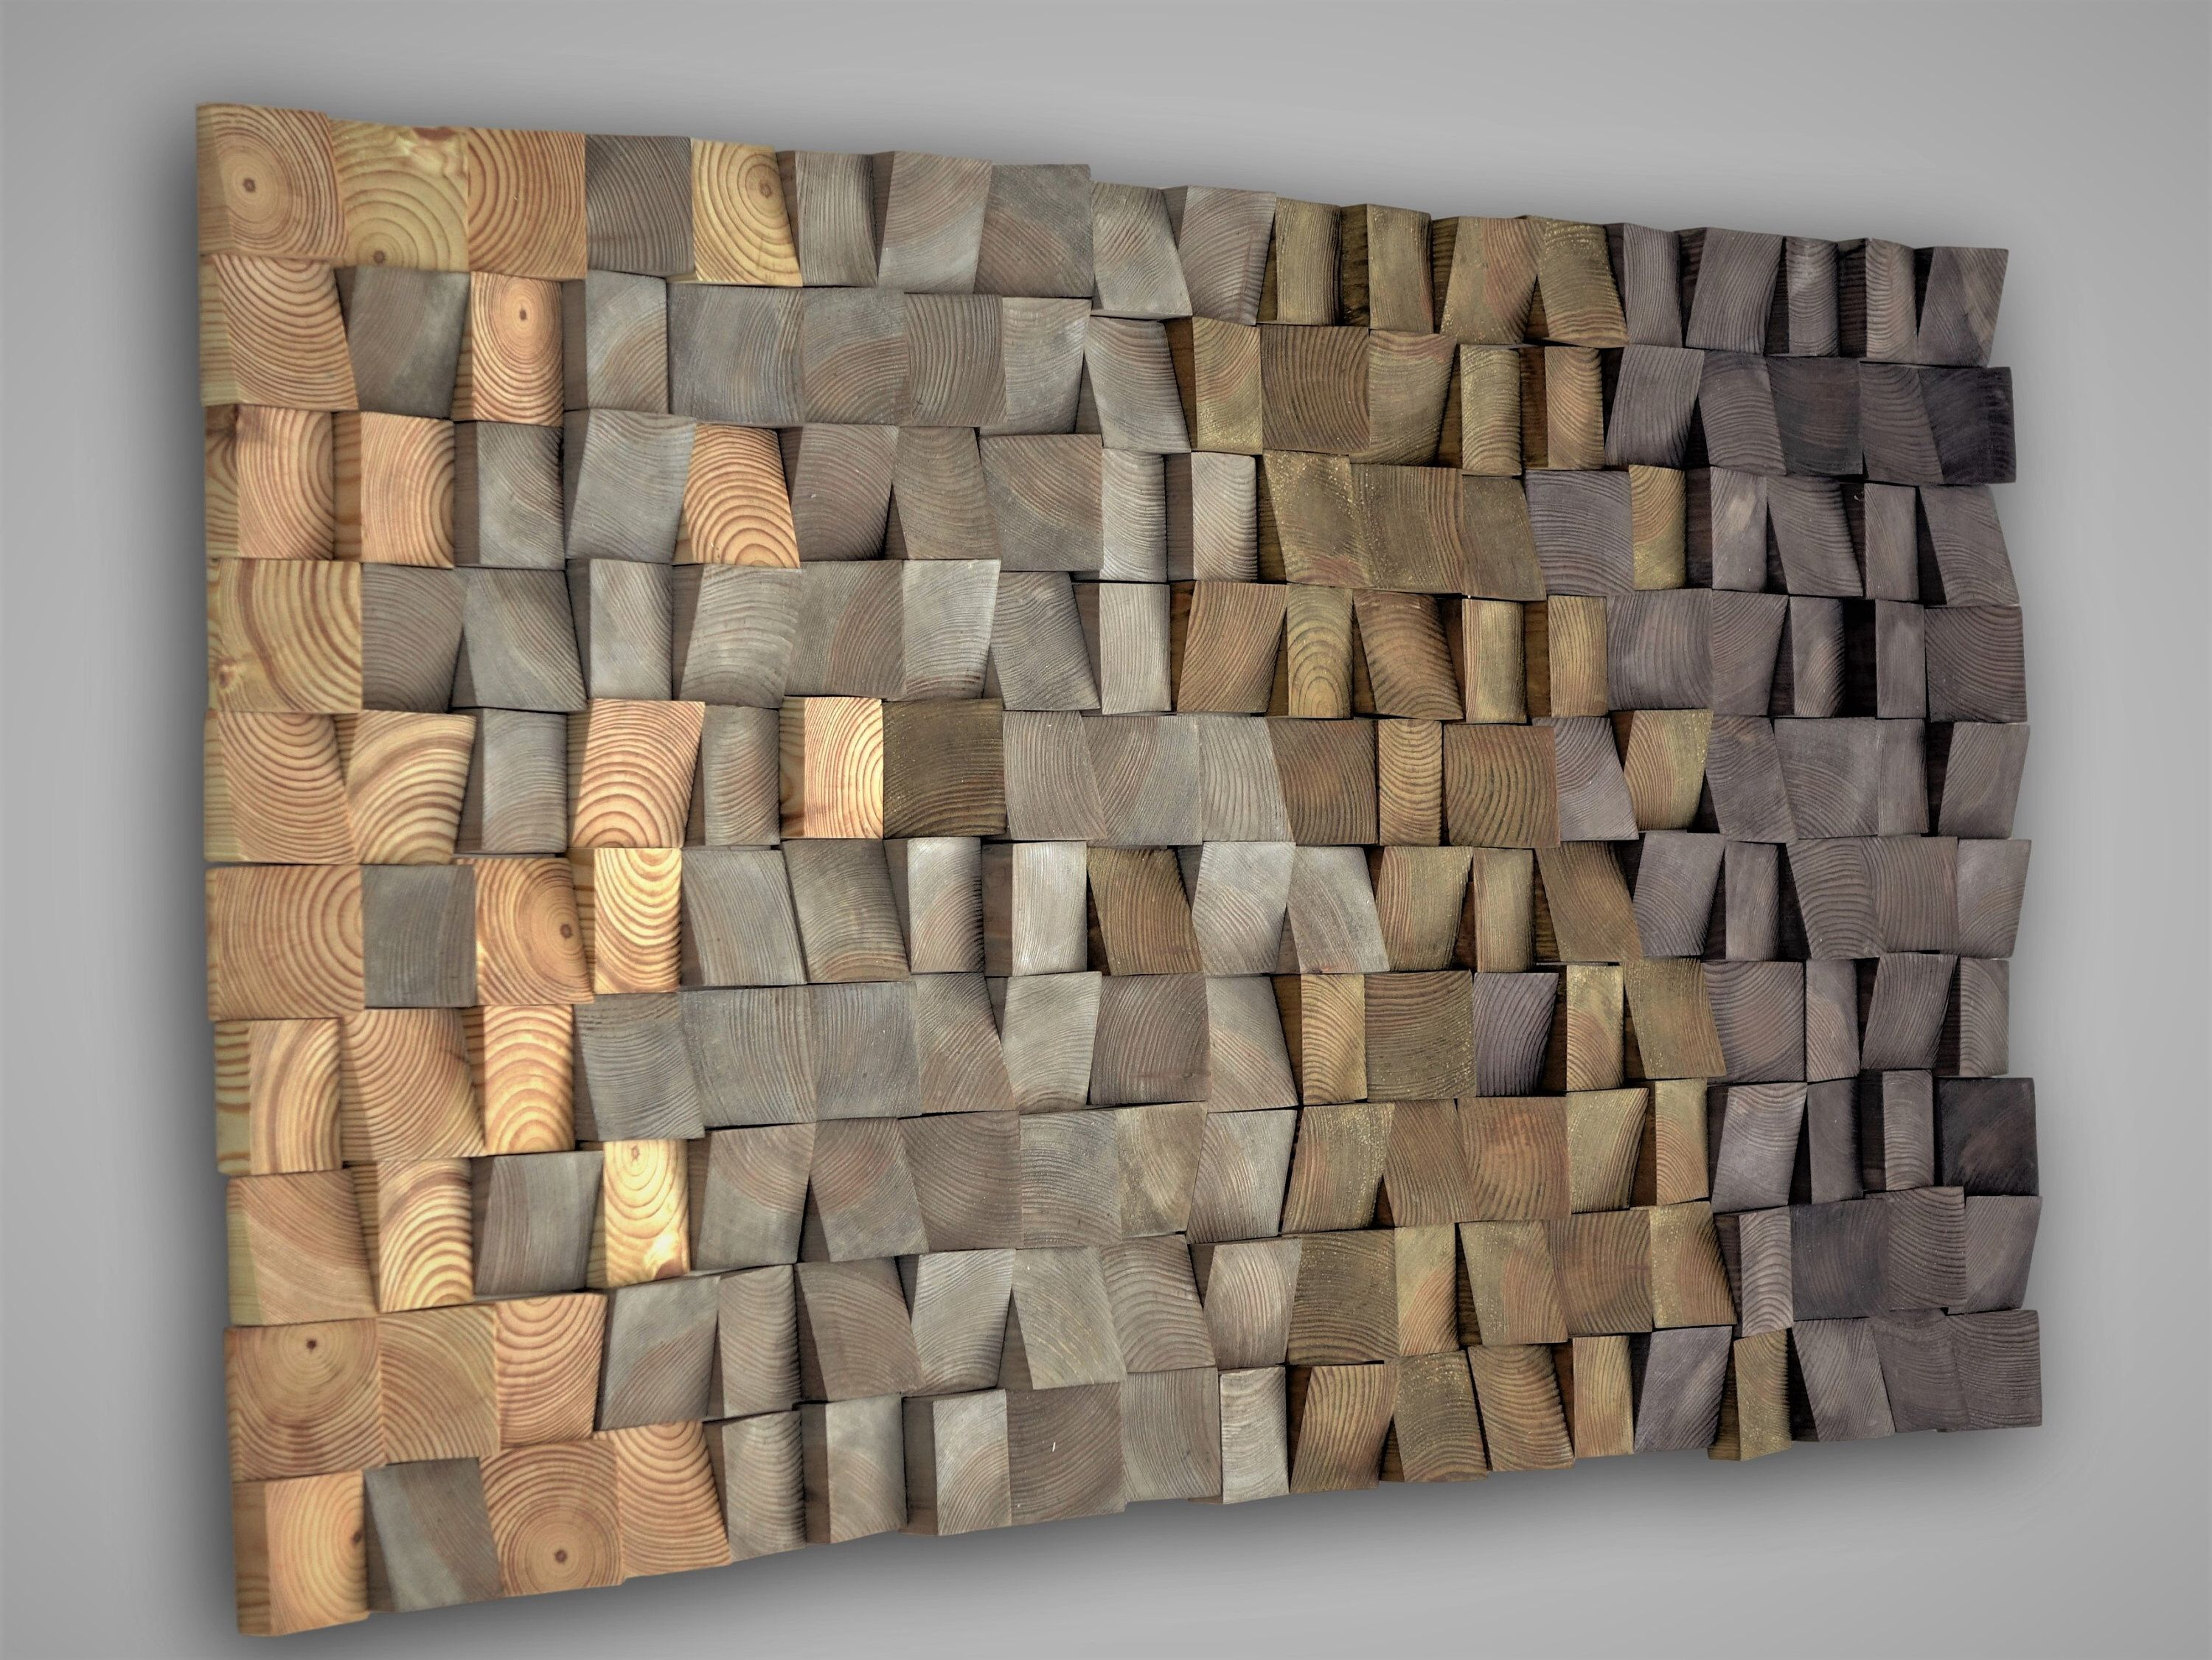 Wooden Mosaic Wall Decor Texture Wood Wall Art 3d Wall Hanging Wooden Sound Diffuser Rustic Wood Panel Wall Decor Wood Panel Wall Decor Etsy Wall Art Mosaic Wall